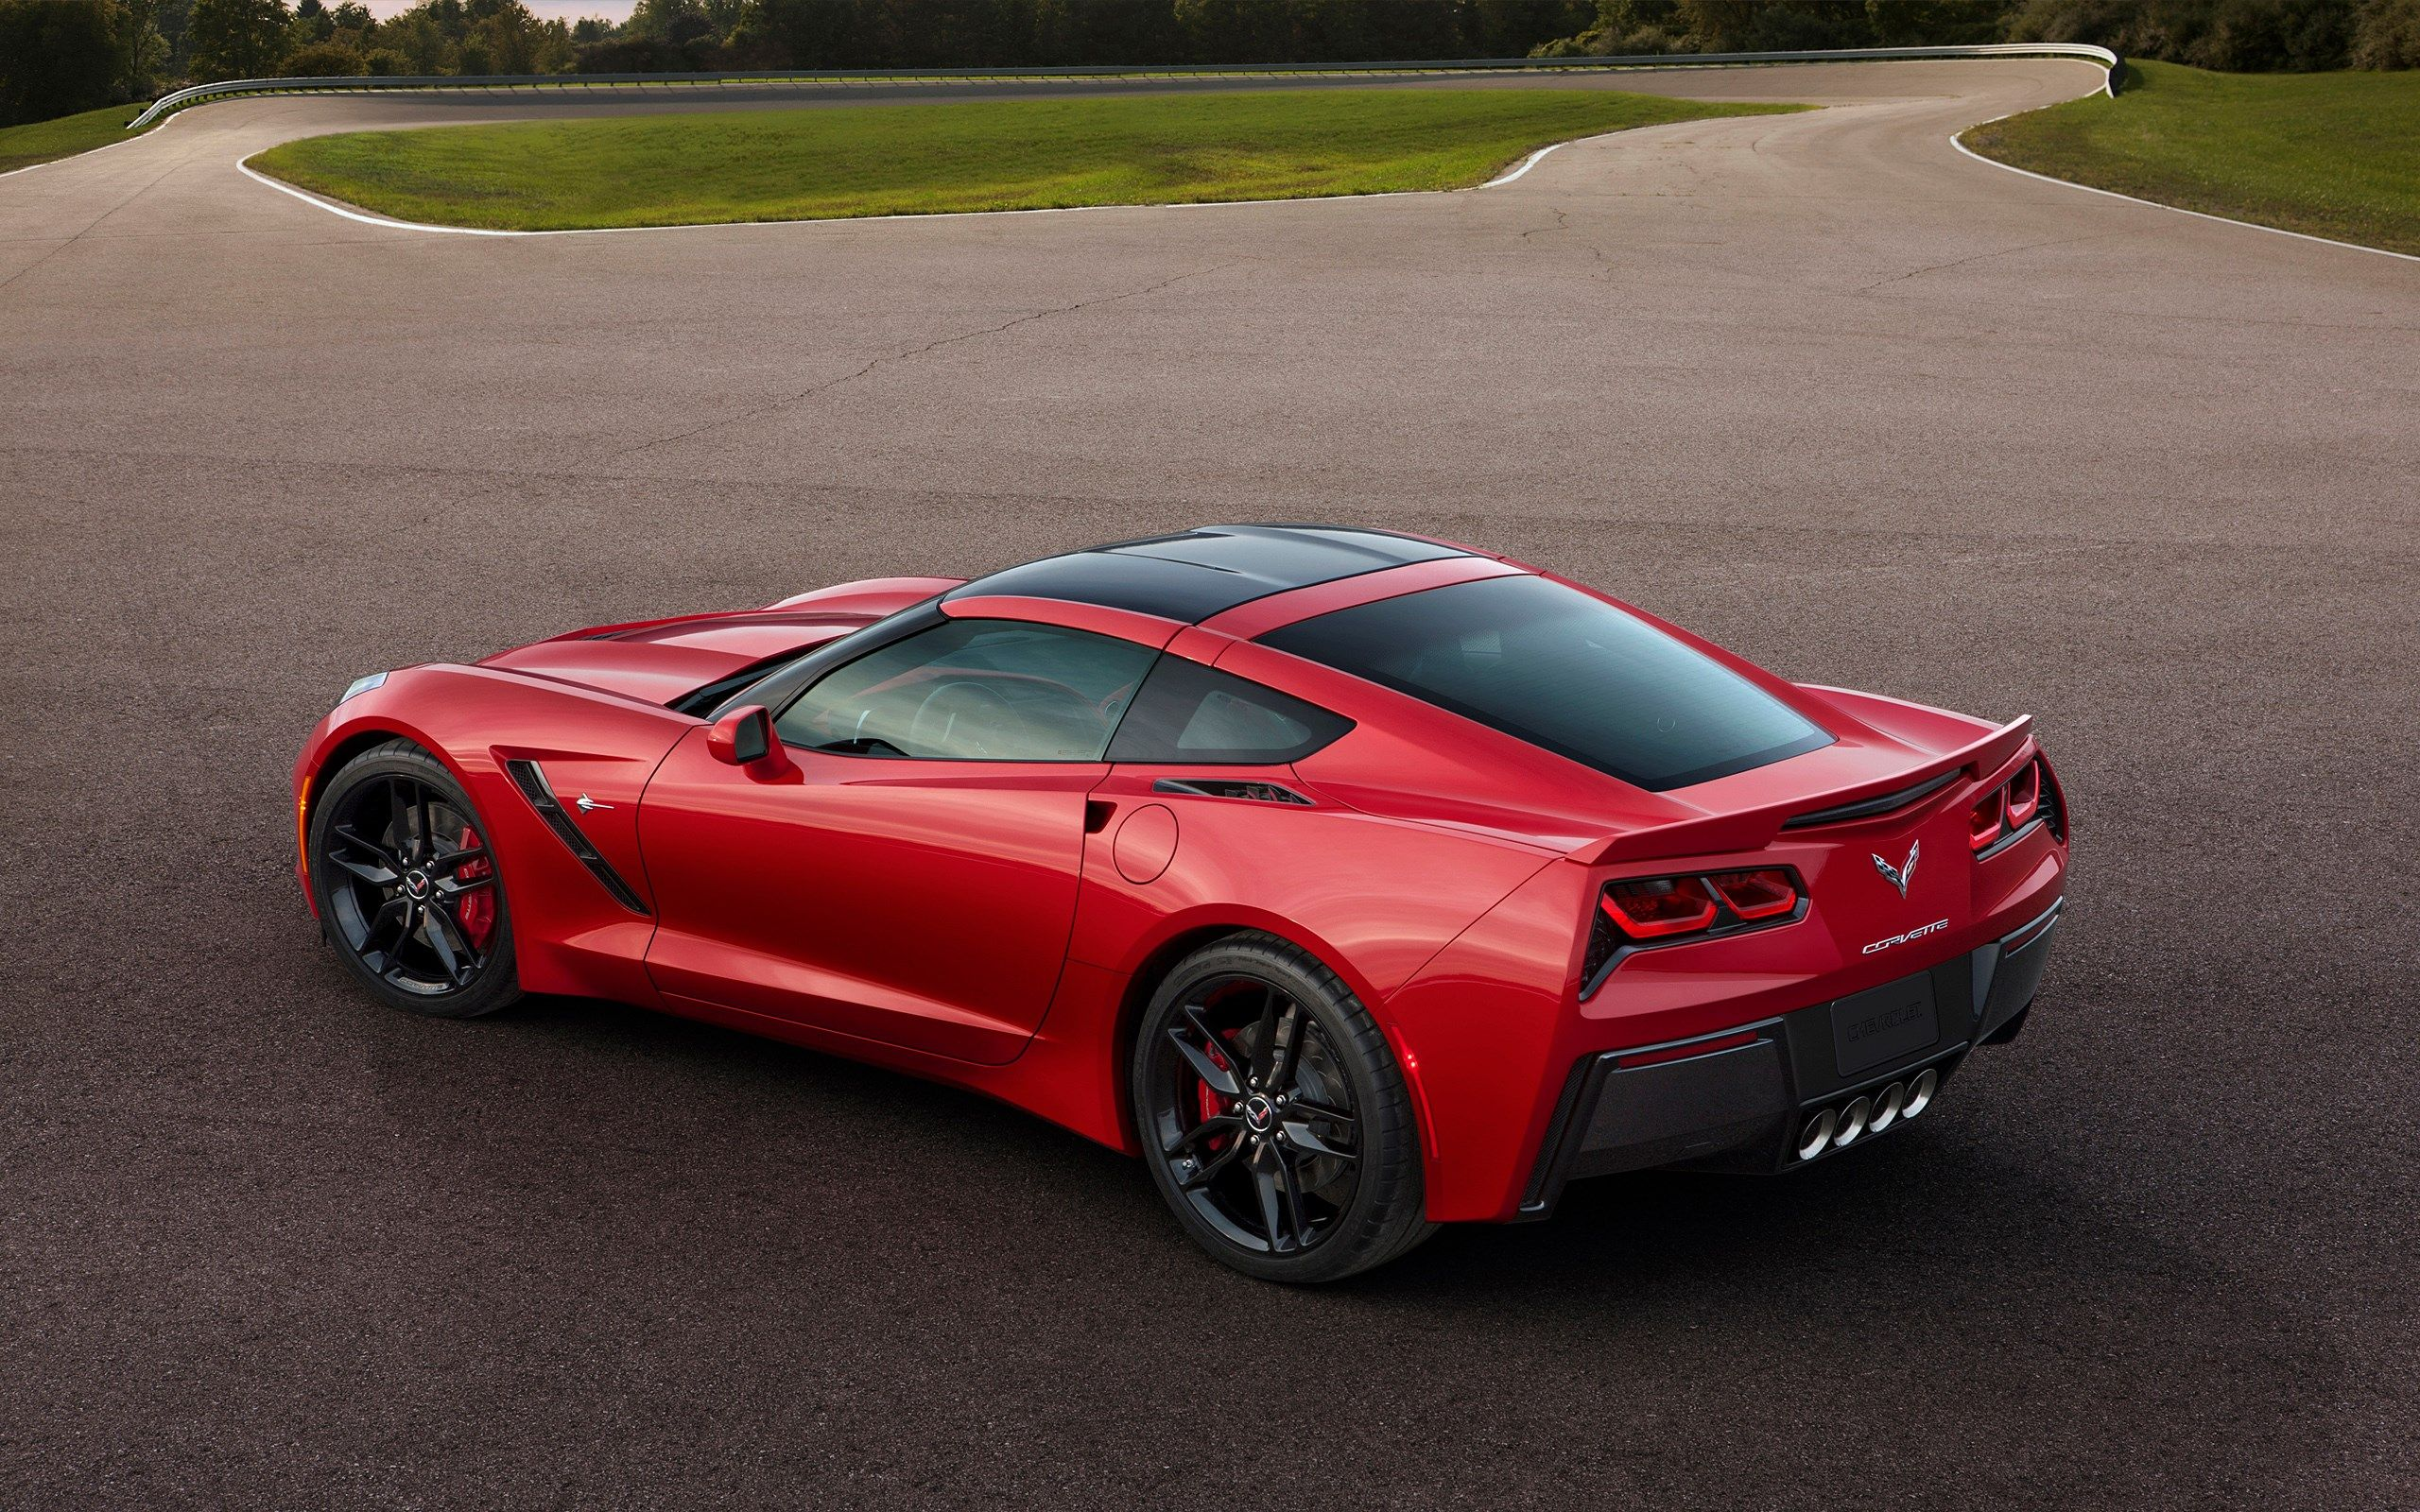 Chevrolet Corvette Wallpaper Hd Backgrounds Images Chevrolet Corvette Category Chevrolet Corvette Stingray Corvette Stingray Chevrolet Corvette 2014